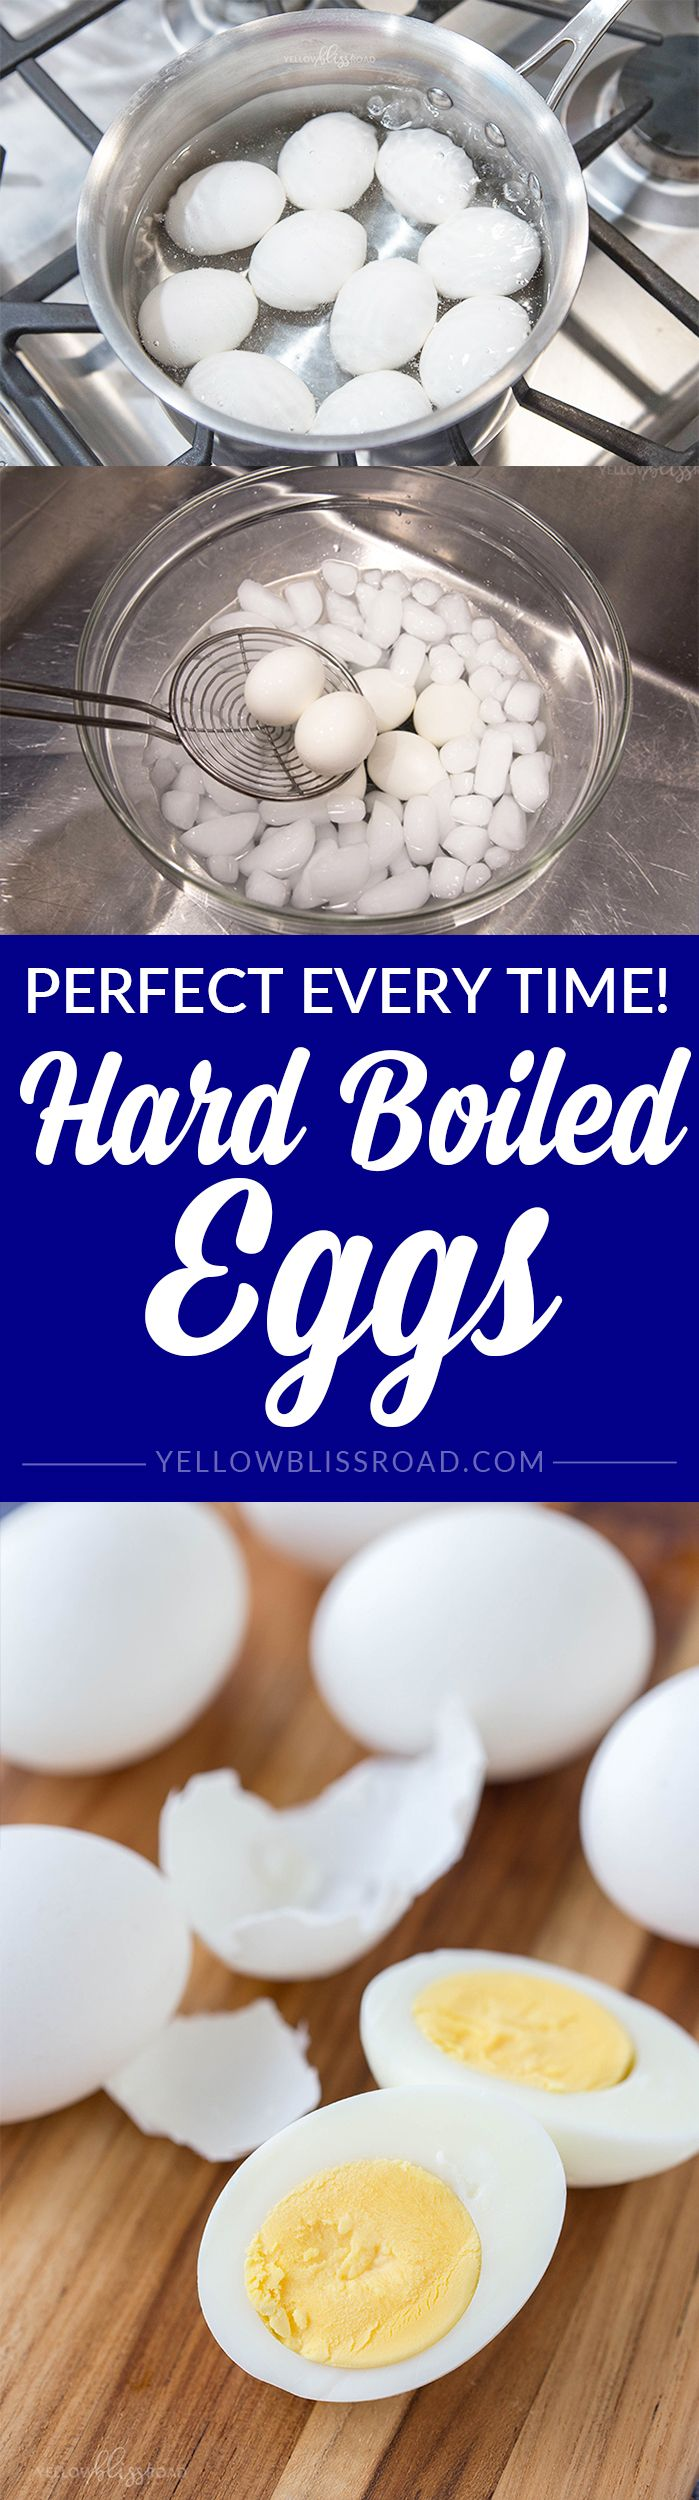 hard boiled eggs time 523 best images about tips on weekly meal 12693